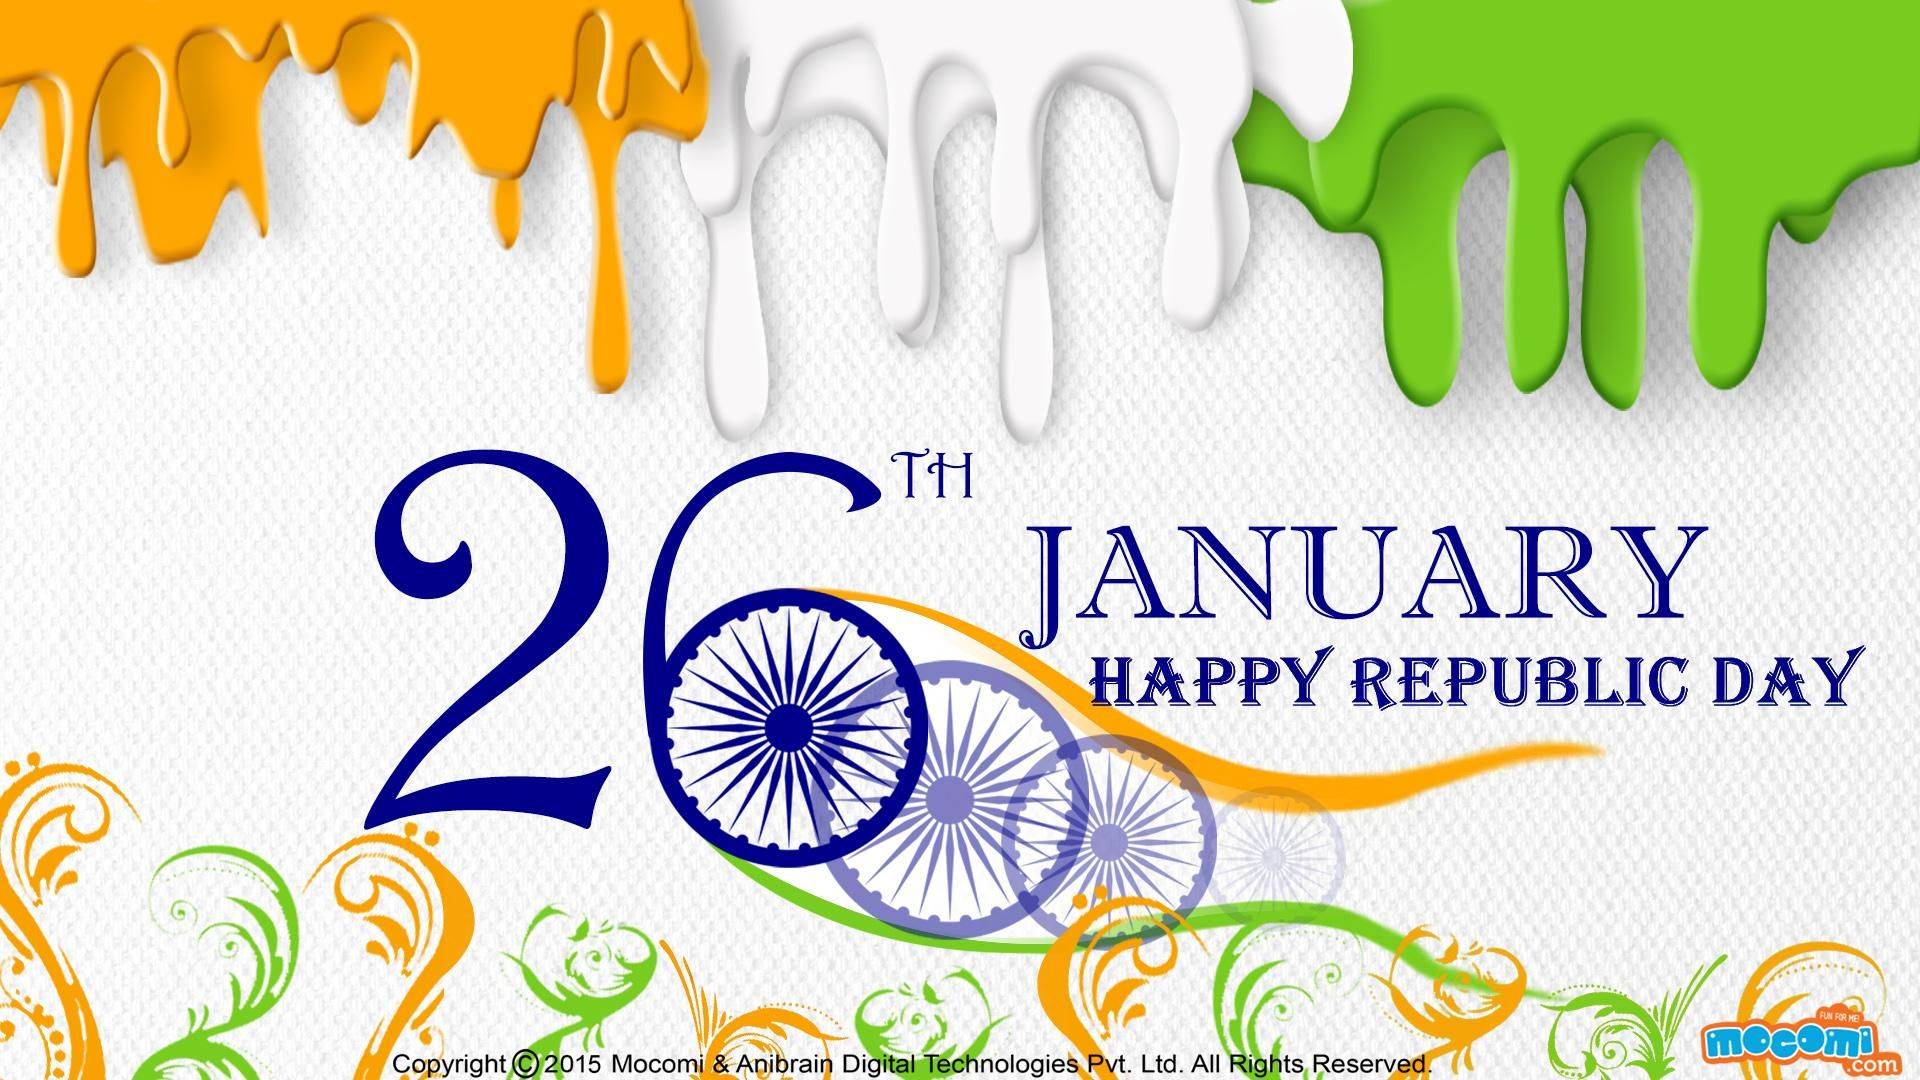 26 January 2021 Republic Day In 2021 Happy Republic Day Wallpaper Republic Day Republic Day Images Hd 26 january 2021 images hd background